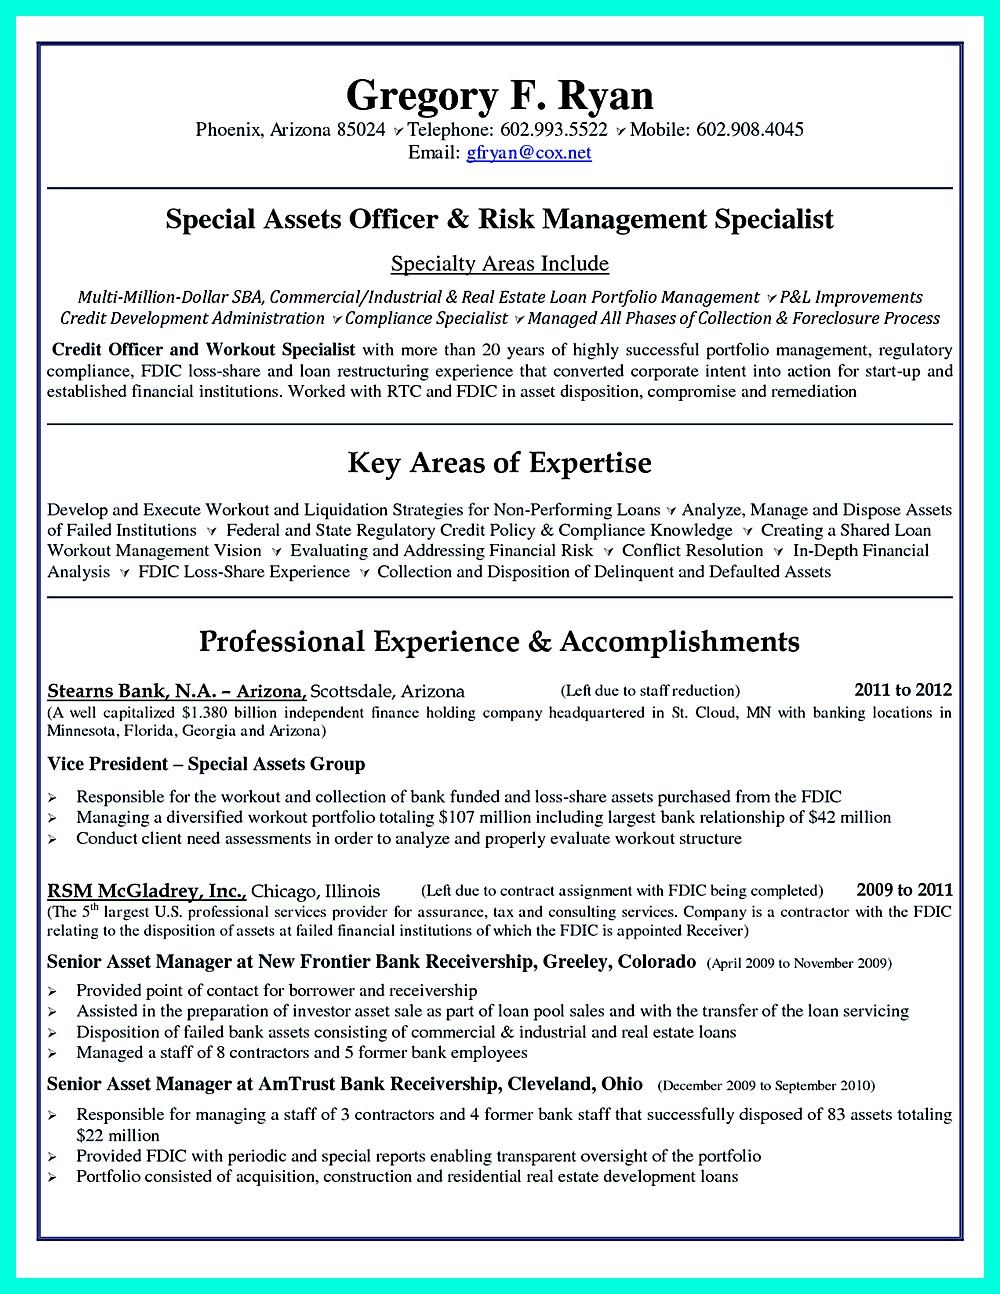 Compliance Officer Resume Is Well Designed To Get The Attention Of The Hiring Manager The Resume Here Begins With The Title Headline Of The Job Then Resume